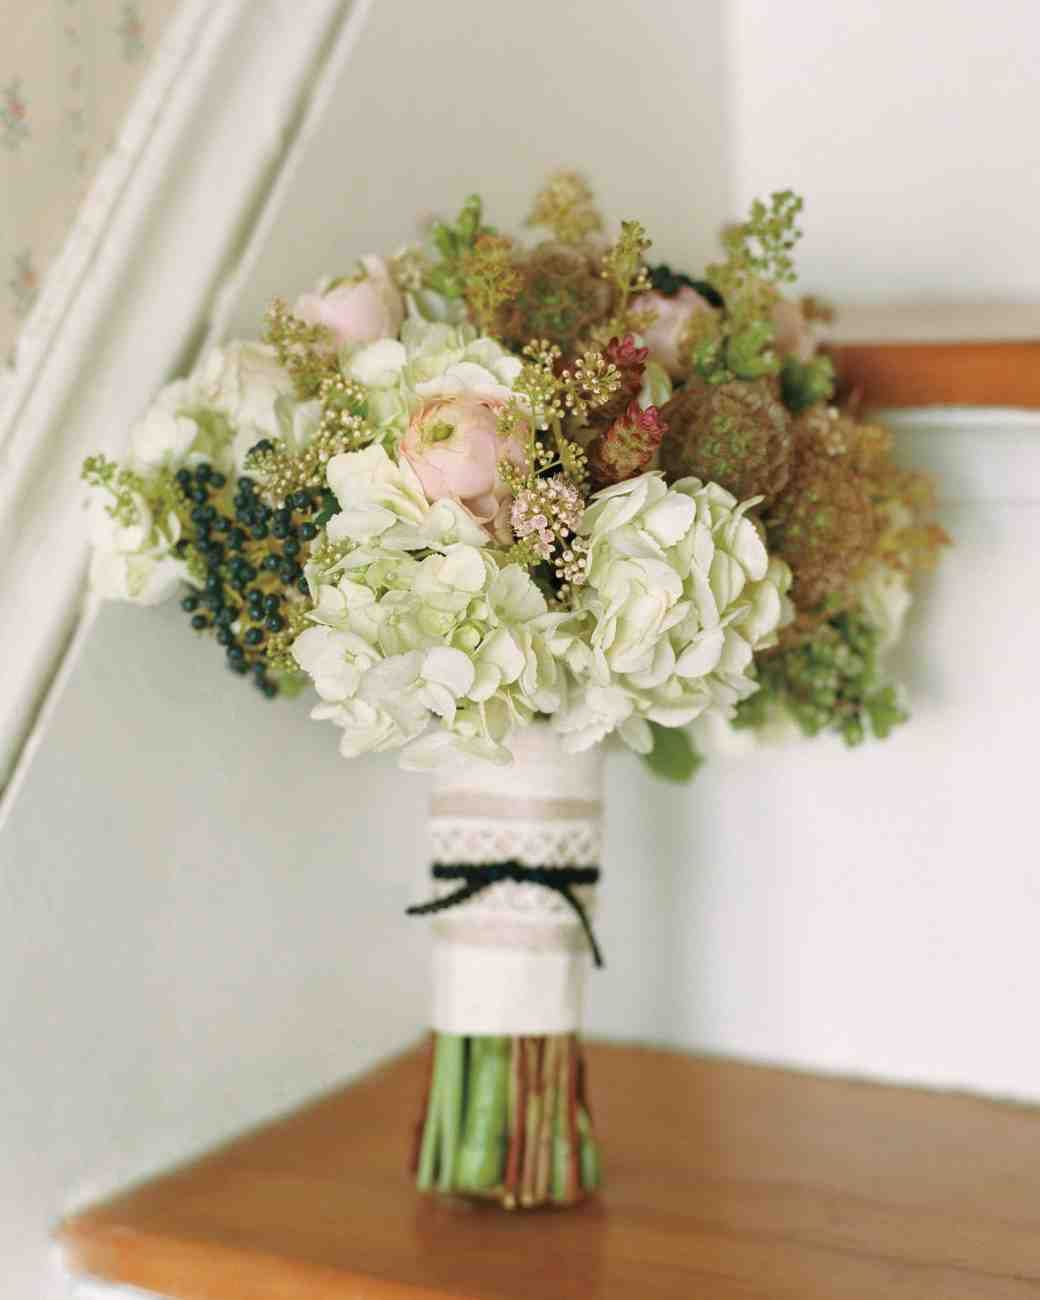 38 Ideas for Your Bridesmaids' Bouquets | Martha Stewart Weddings - At this couple's nuptials in Maine, each bridesmaid carried a dense cluster of privet berries, hydrangea, ranunculus, scabiosa, and oregano, along with a few wild blooms from the region from Mindy Rice Design.